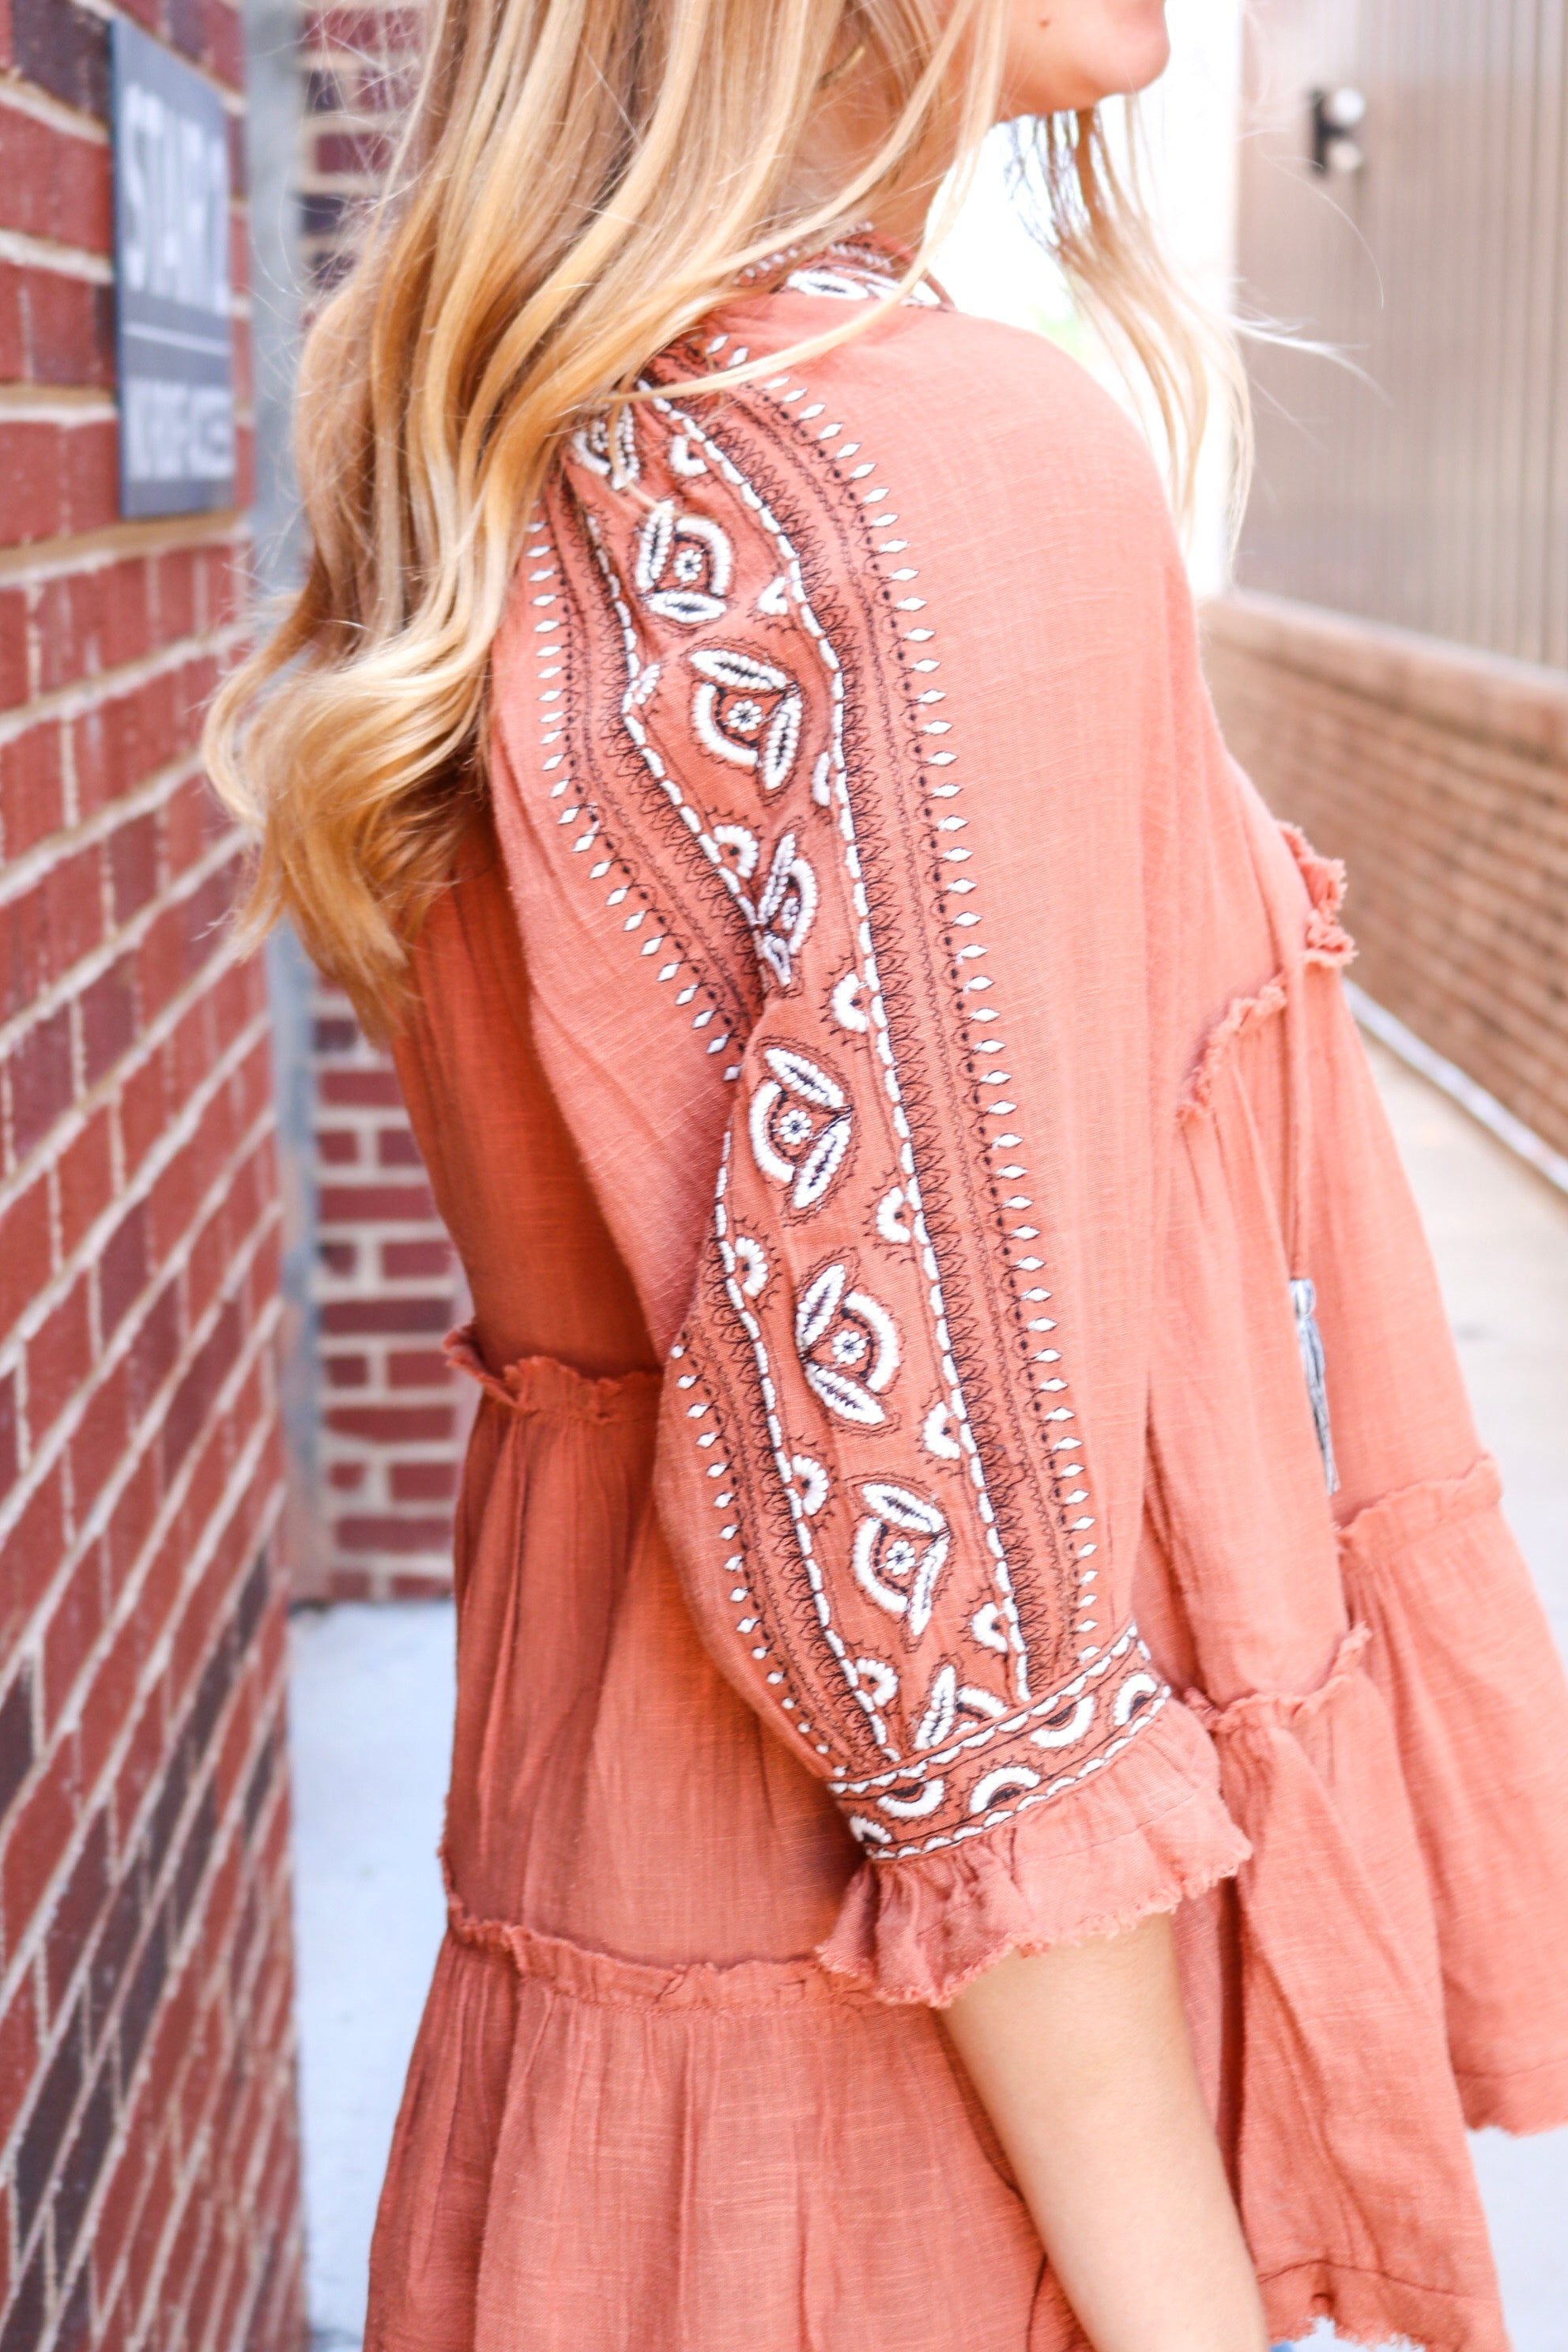 FREE PEOPLE DREAMWEAVER EMBROIDERED TUNIC